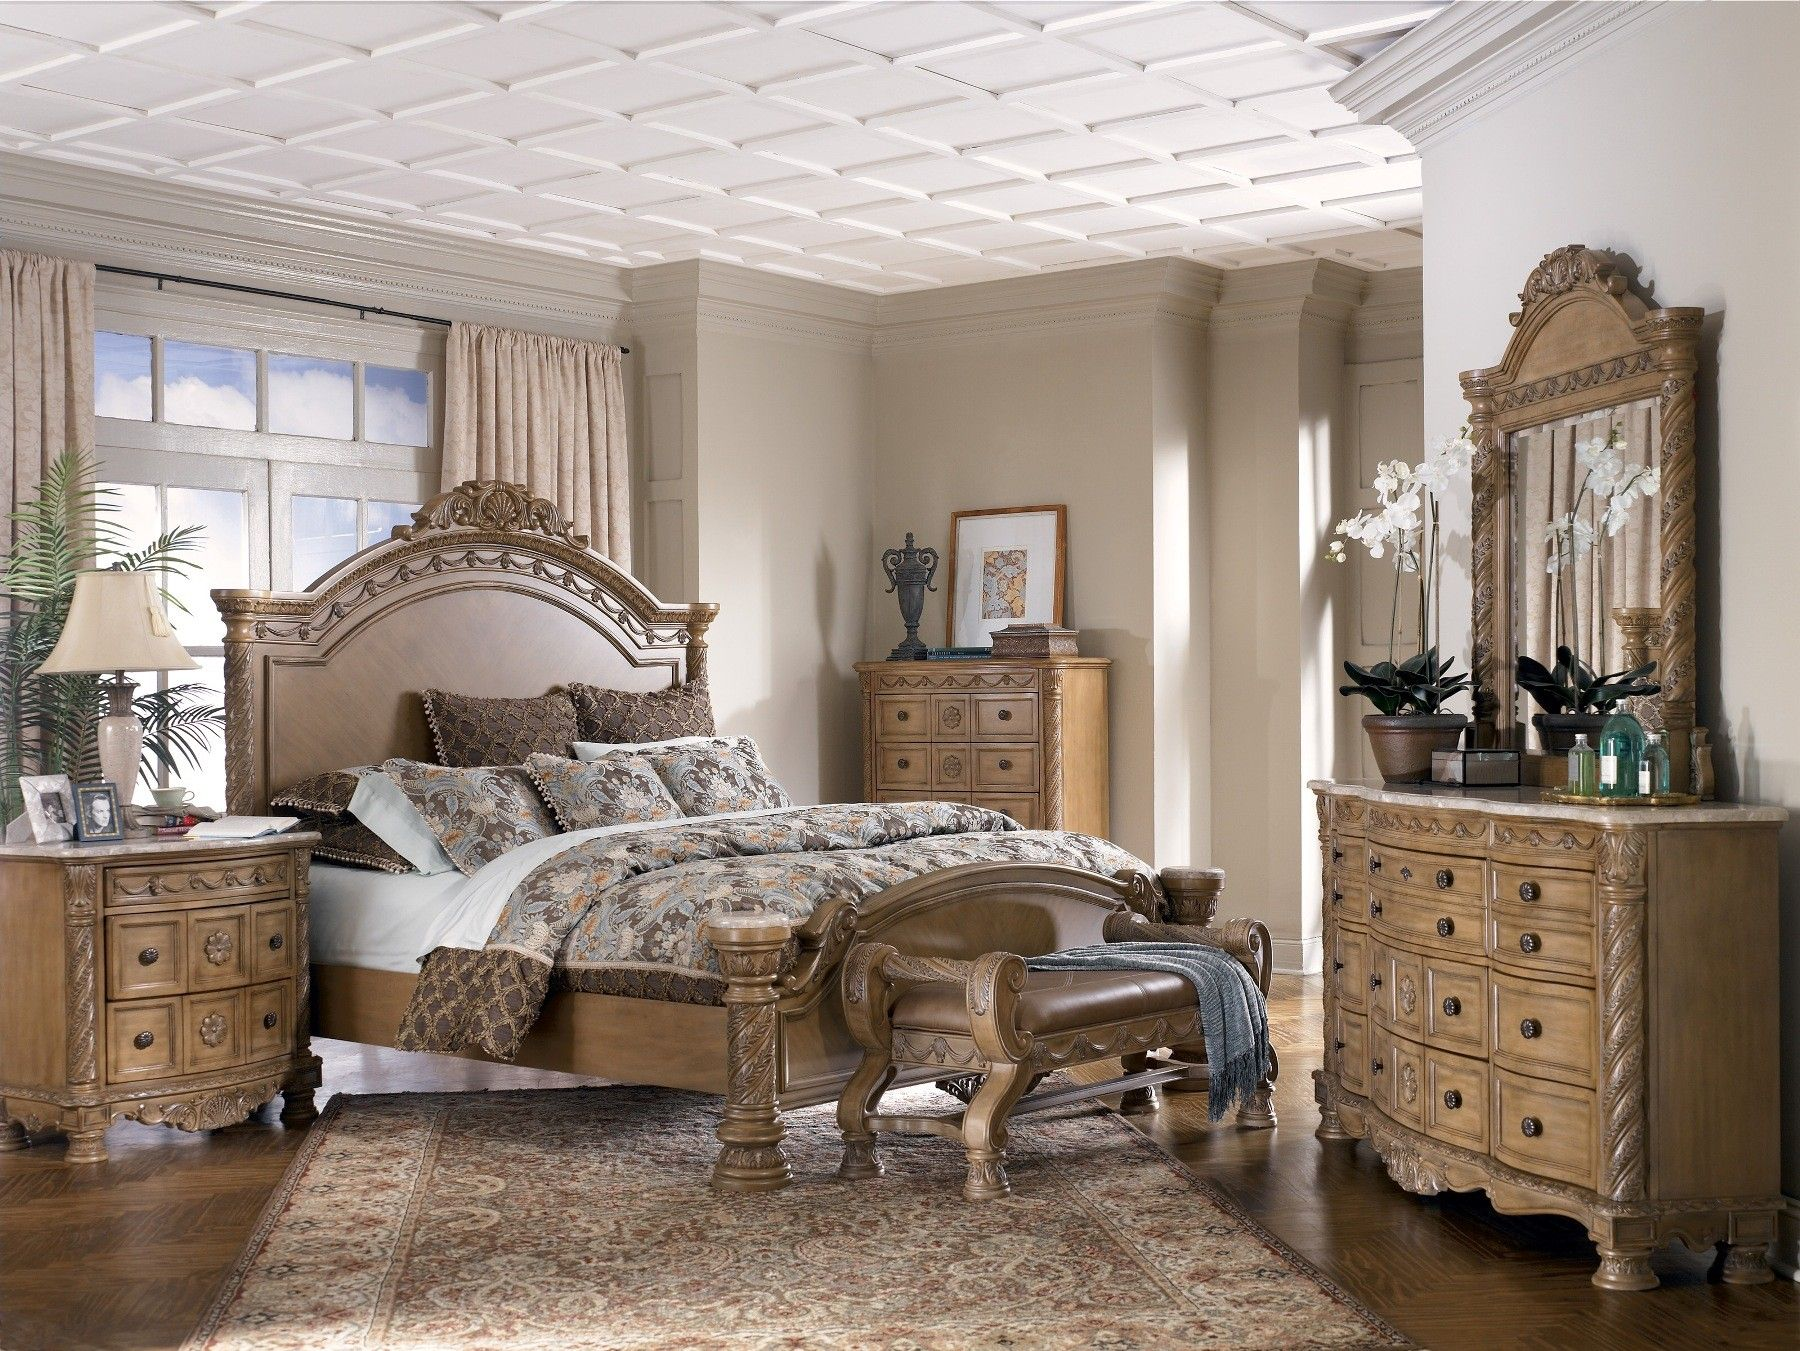 King Bedroom Sets Ashley Furniture ashley furniture gallery | ashley furniture south coast panel